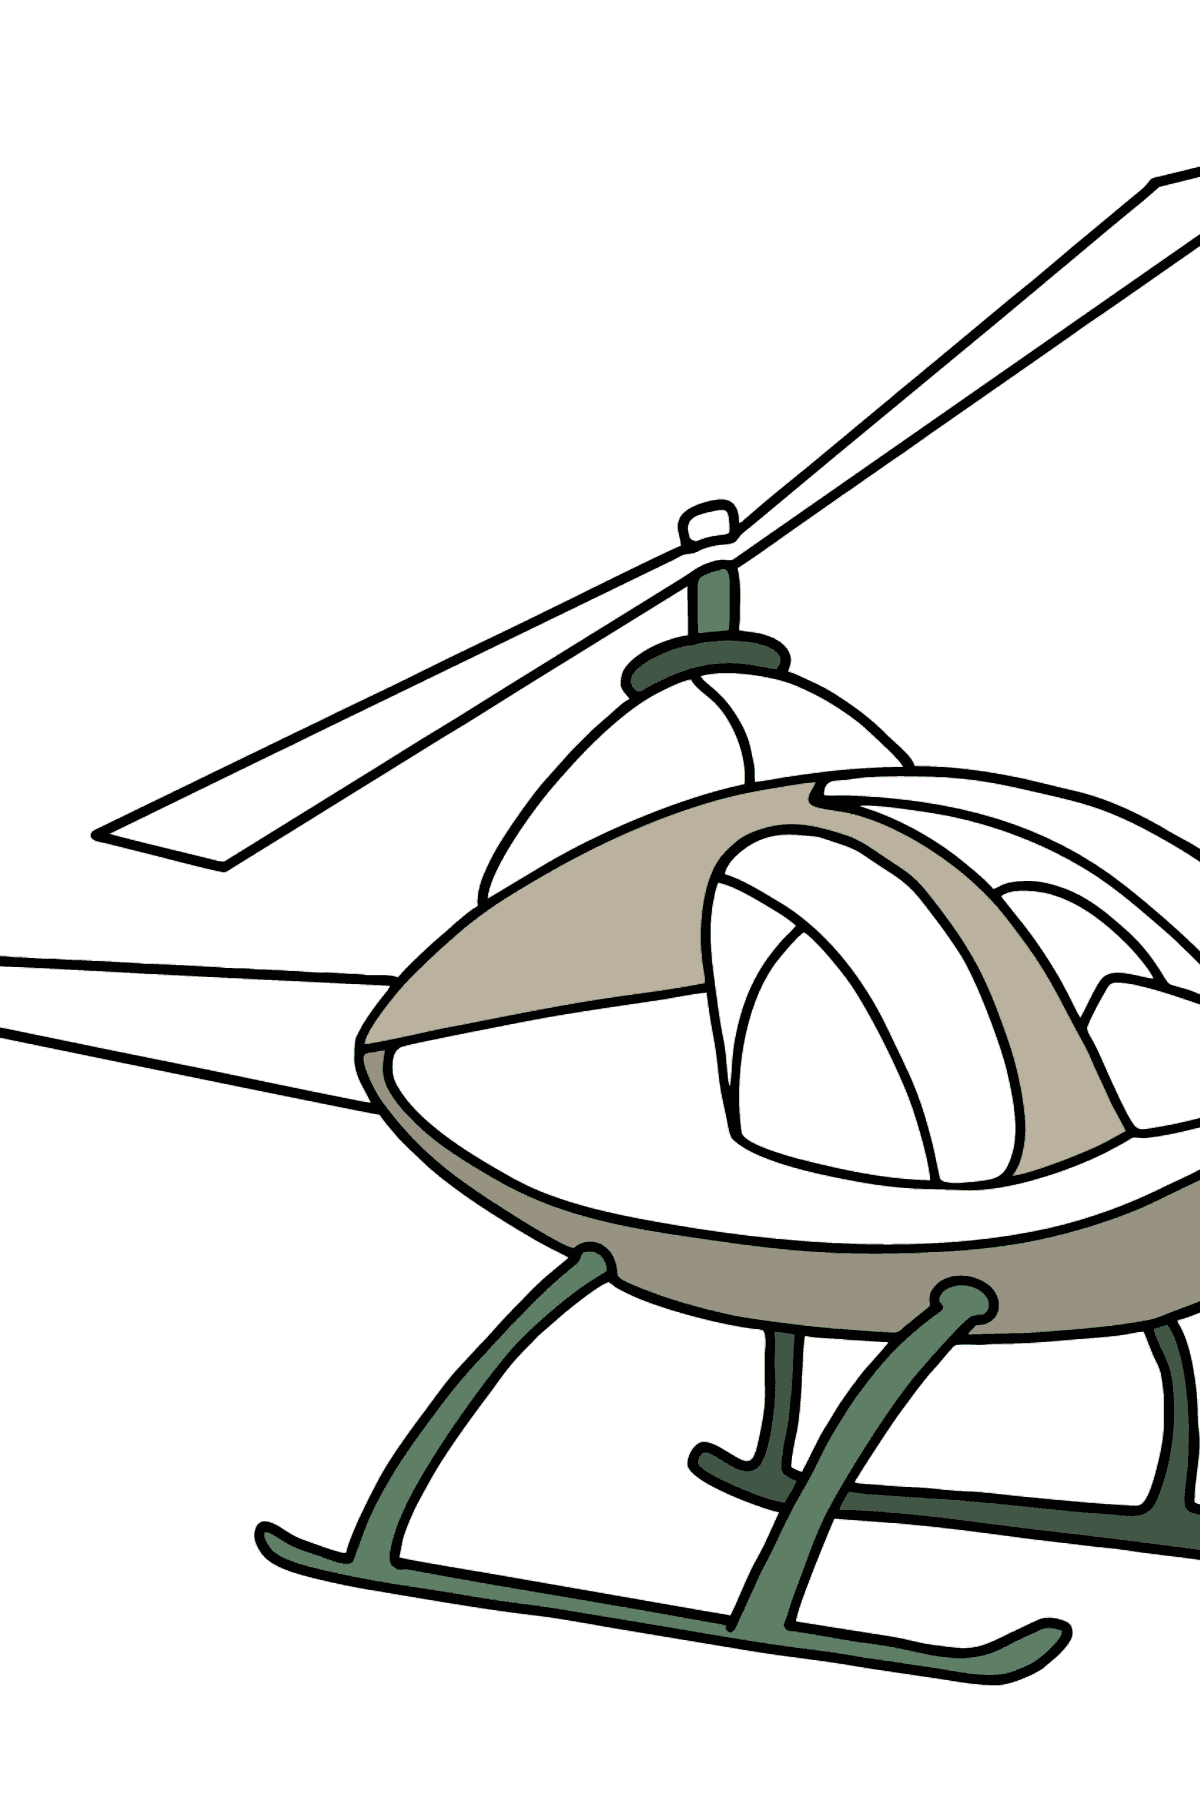 Helicopter coloring page for kids - Coloring Pages for Kids